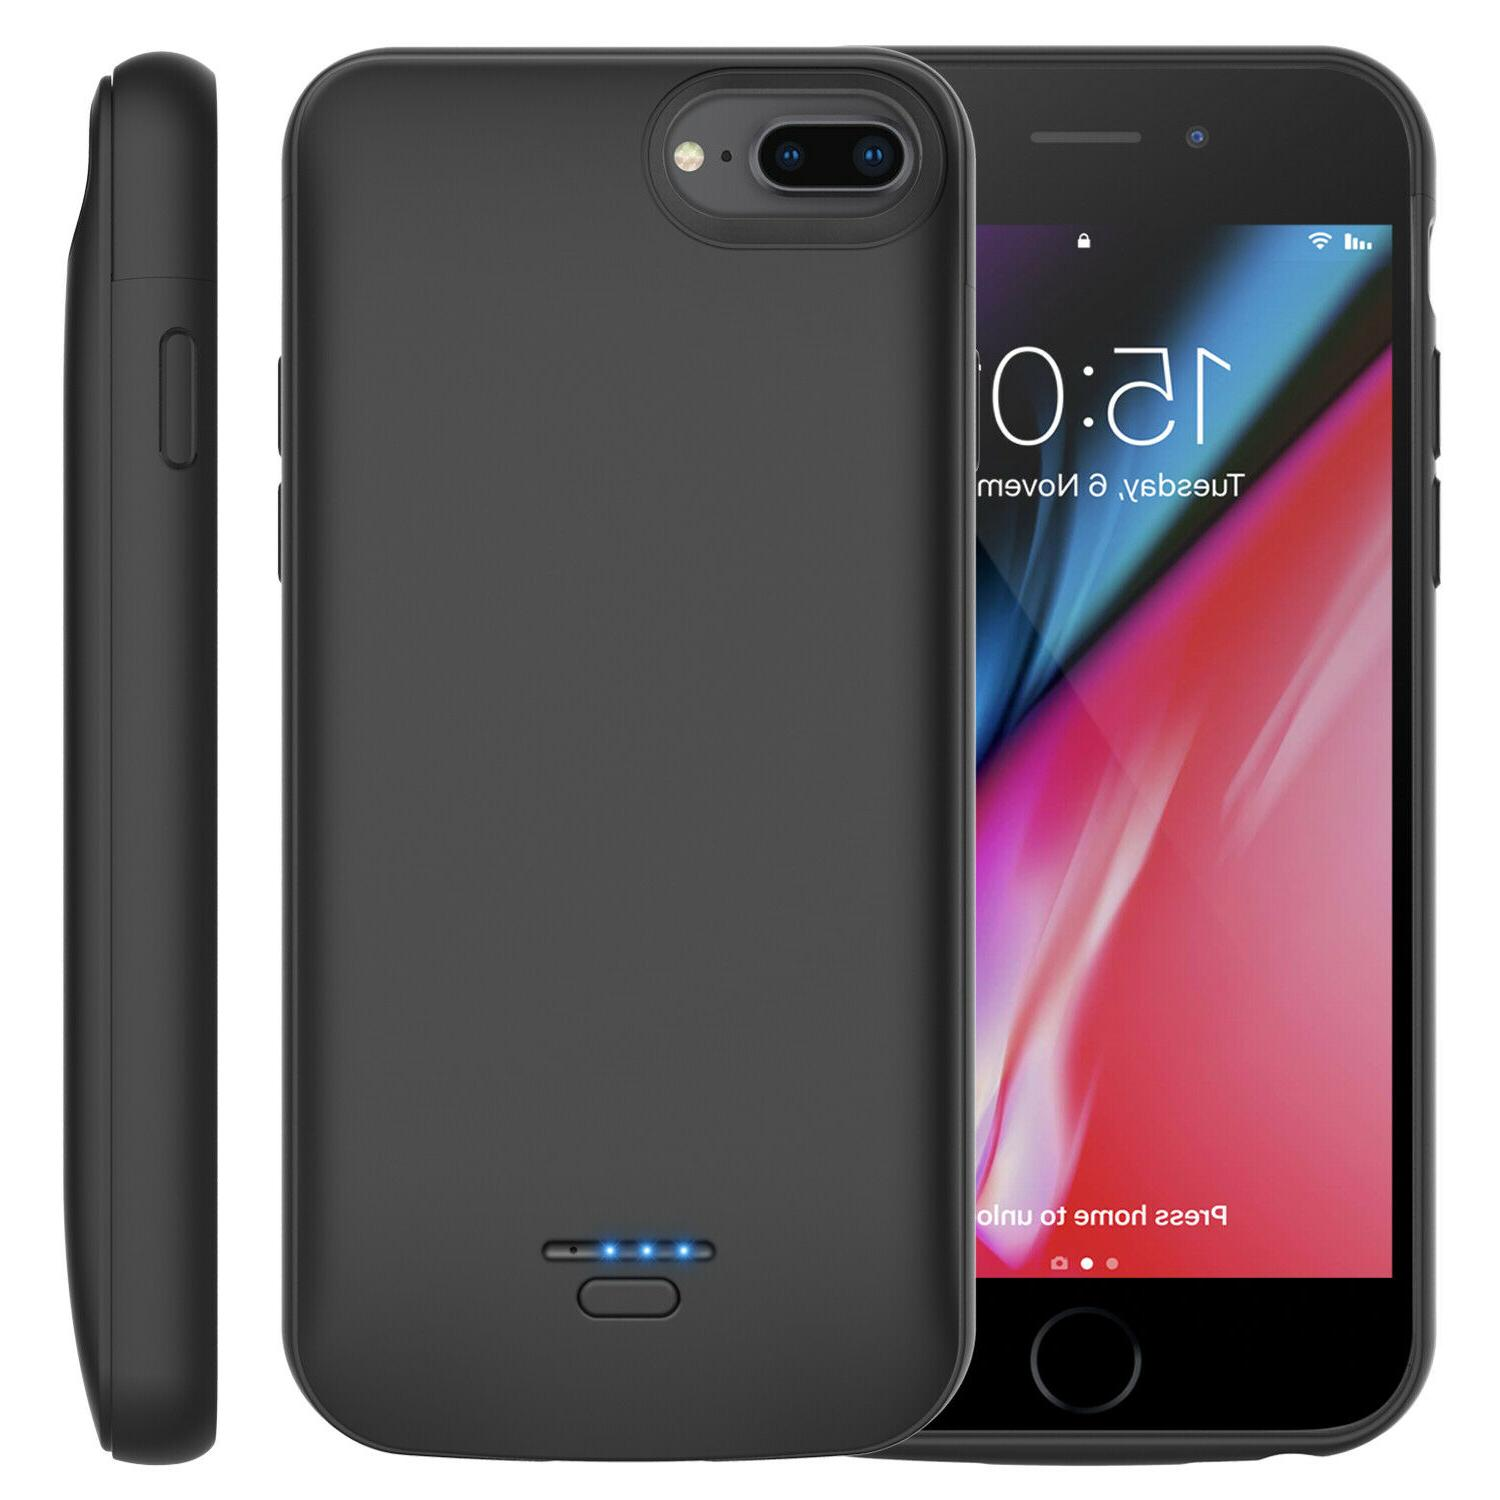 For Apple iPhone 7/7 Plus/8/8 Case Power Cover